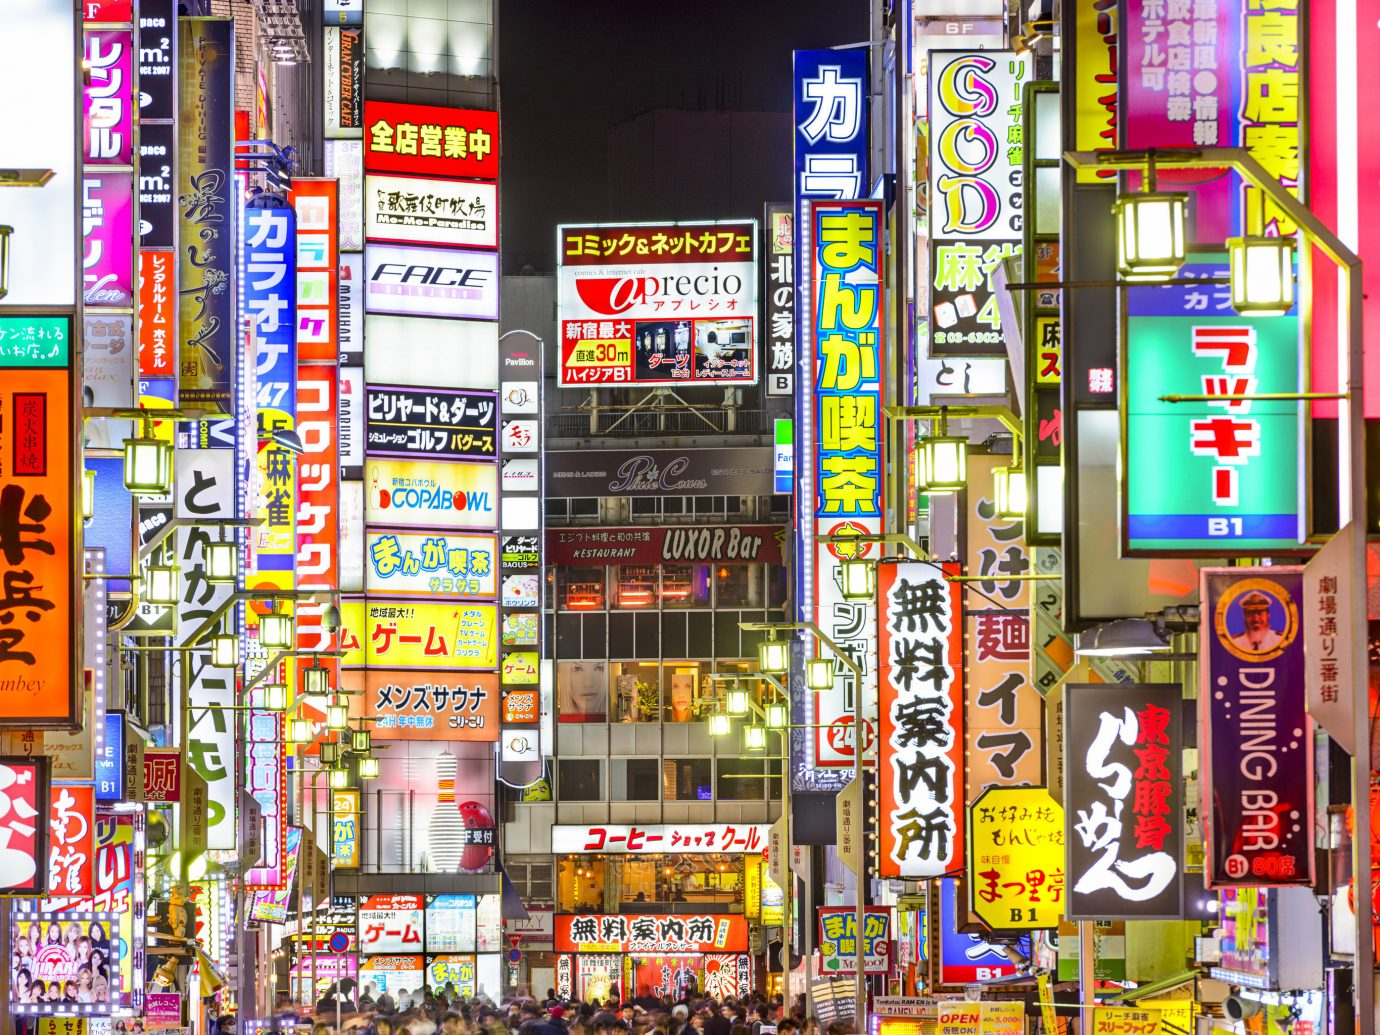 building many outdoor road City metropolis urban area street retail sign window area cityscape convenience store colorful night several colored